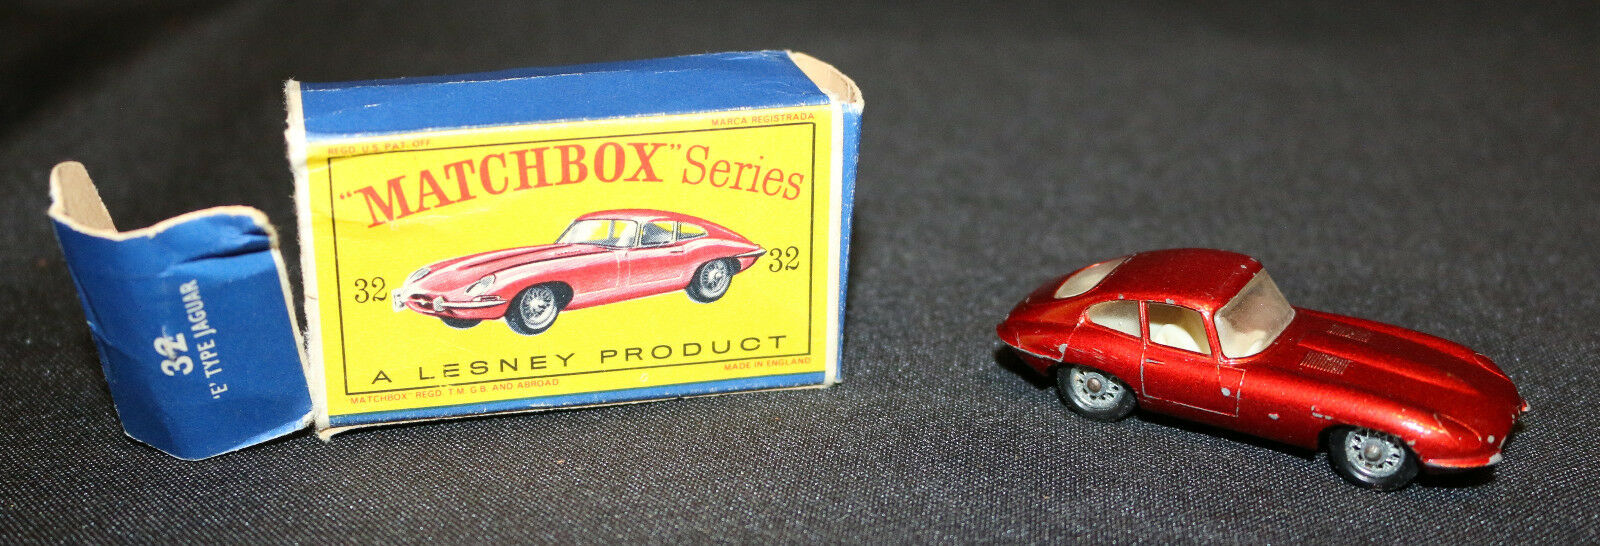 Matchbox Series by Lesney - Made in England - 1962 'E' Type Jaguar